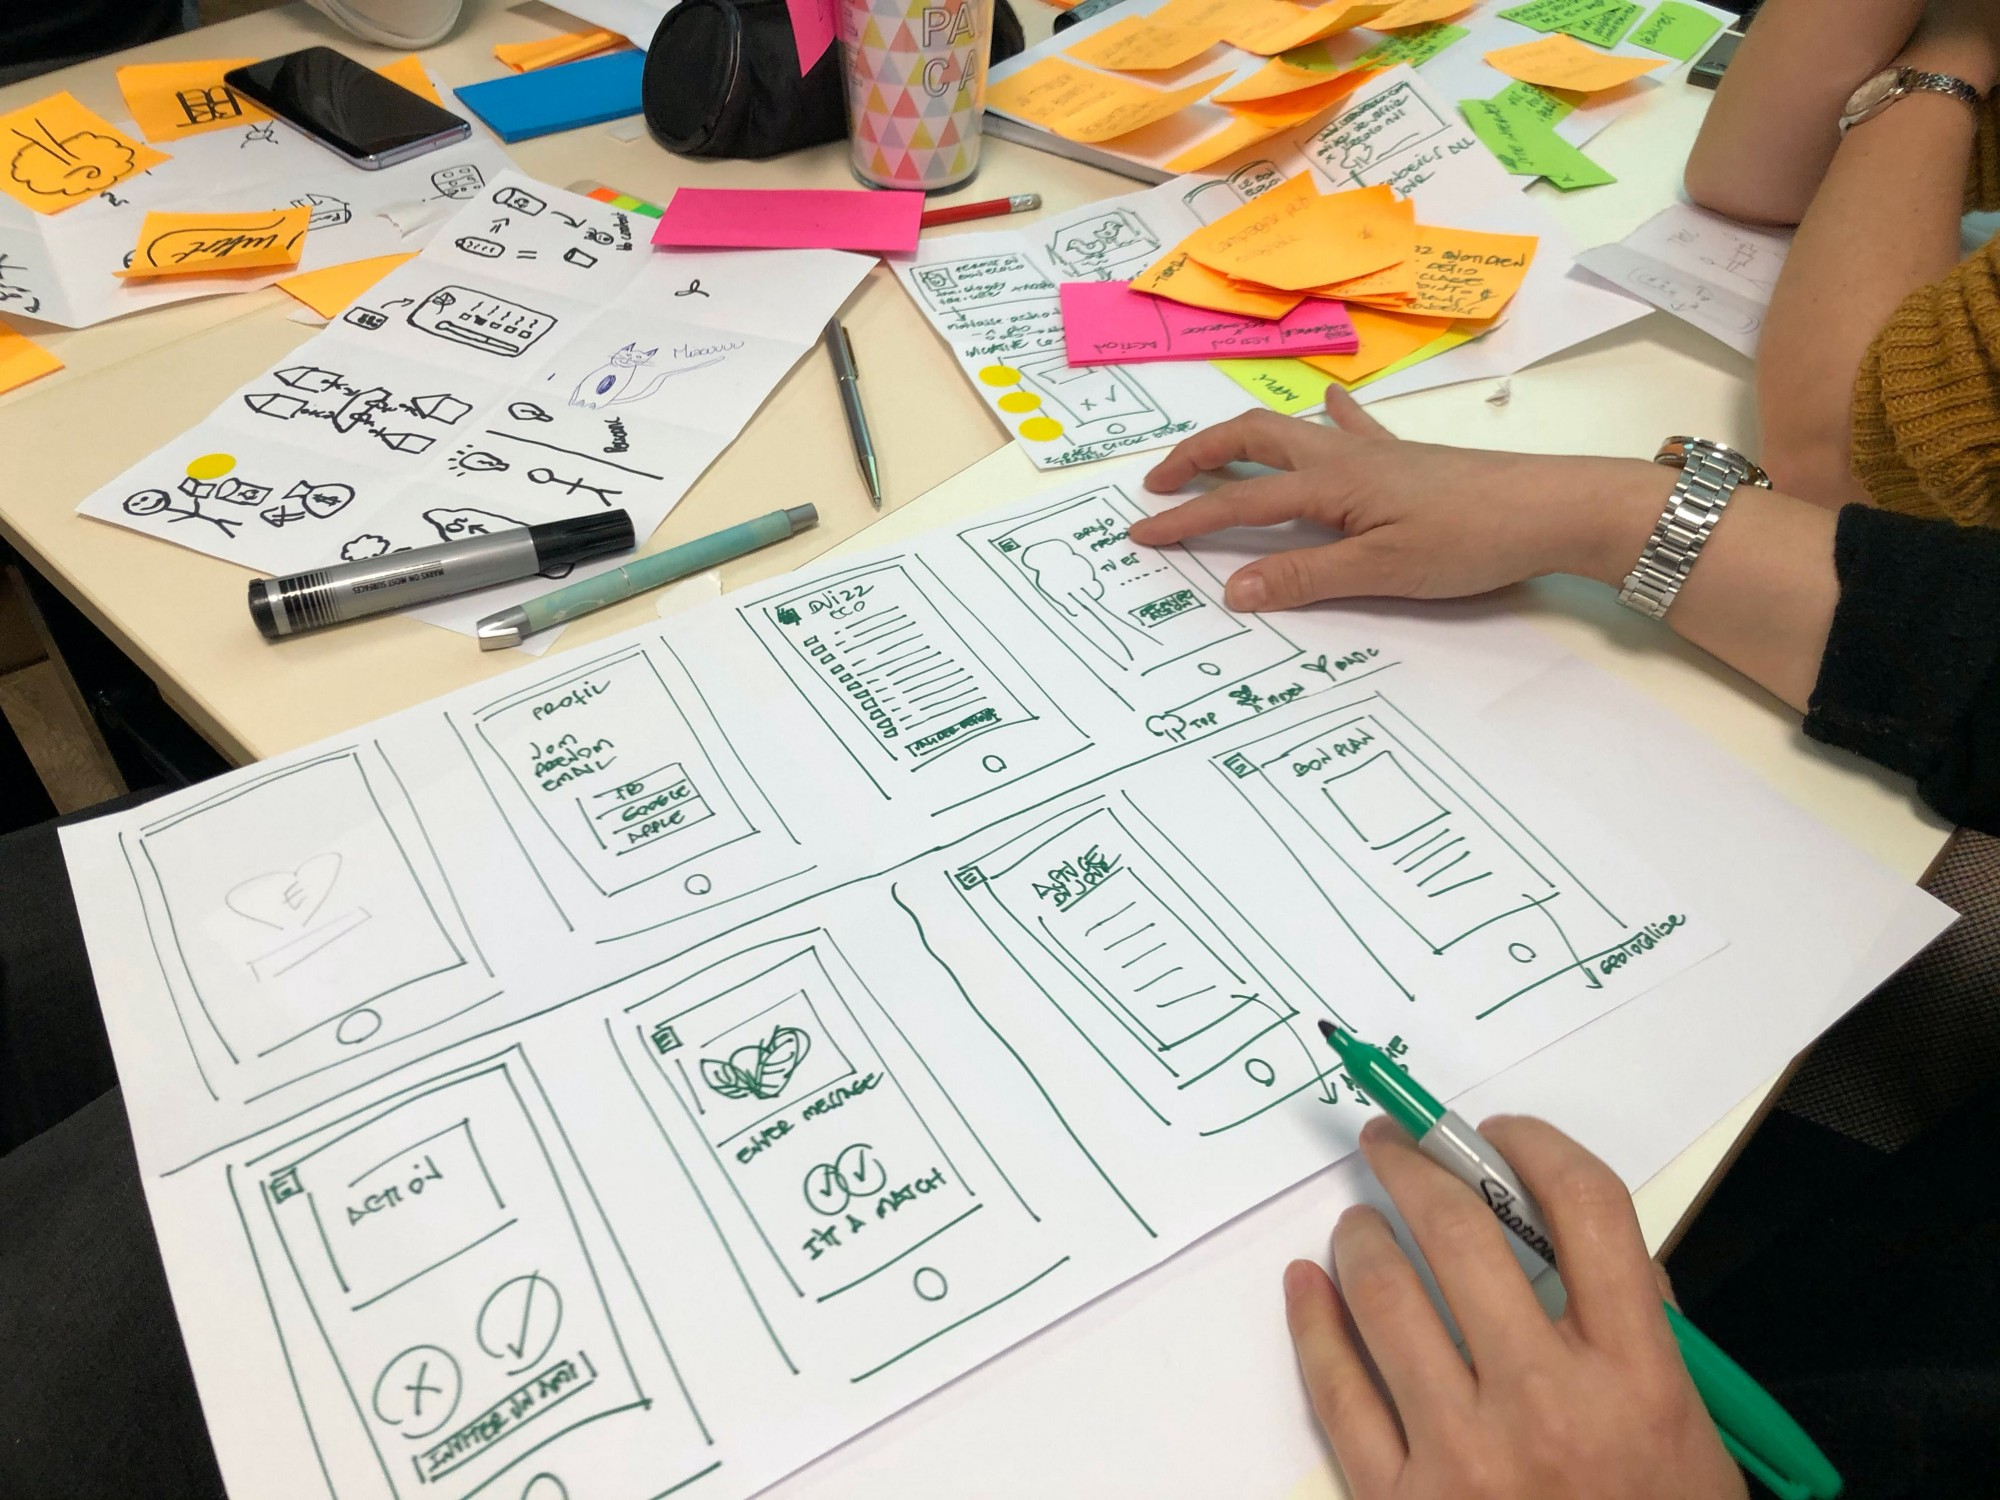 Why Prototyping is Important and Necessary in Your Design Making Process